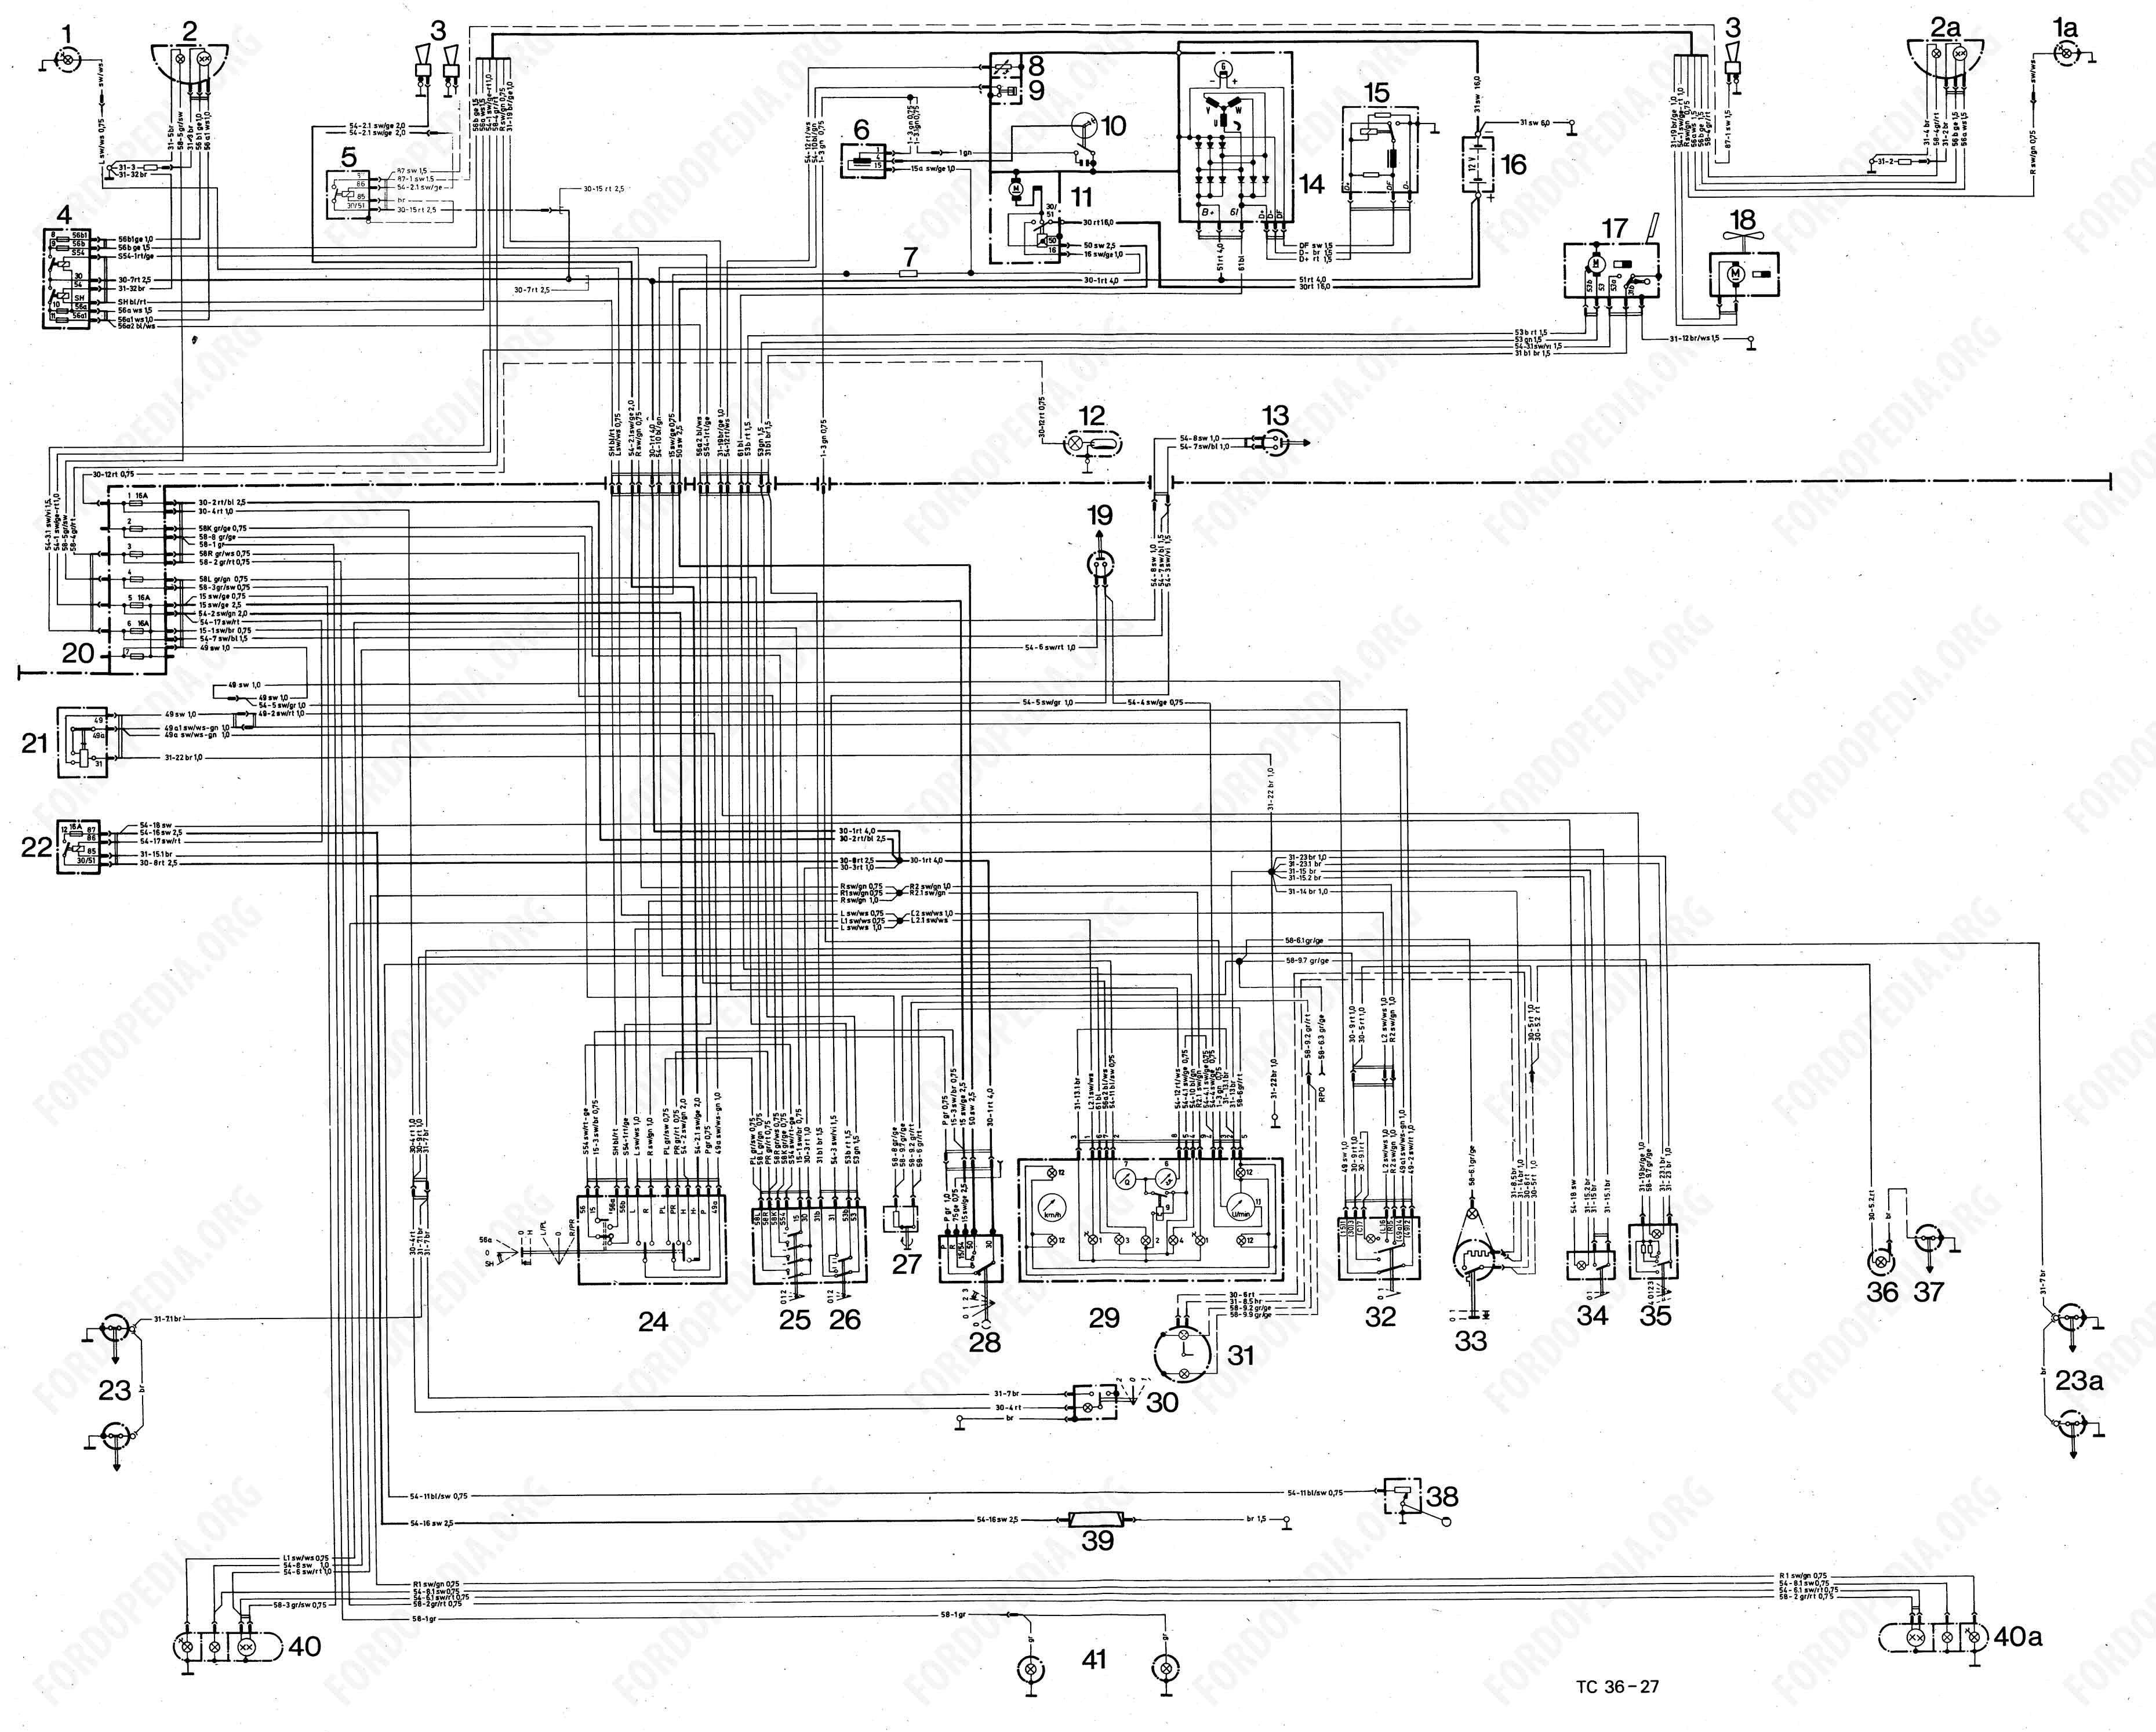 Ford 2 0 Zetec Wiring Diagram Great Design Of Engine Mondeo Liter Timing Belt Replacement Rh Detoxicrecenze Com 20